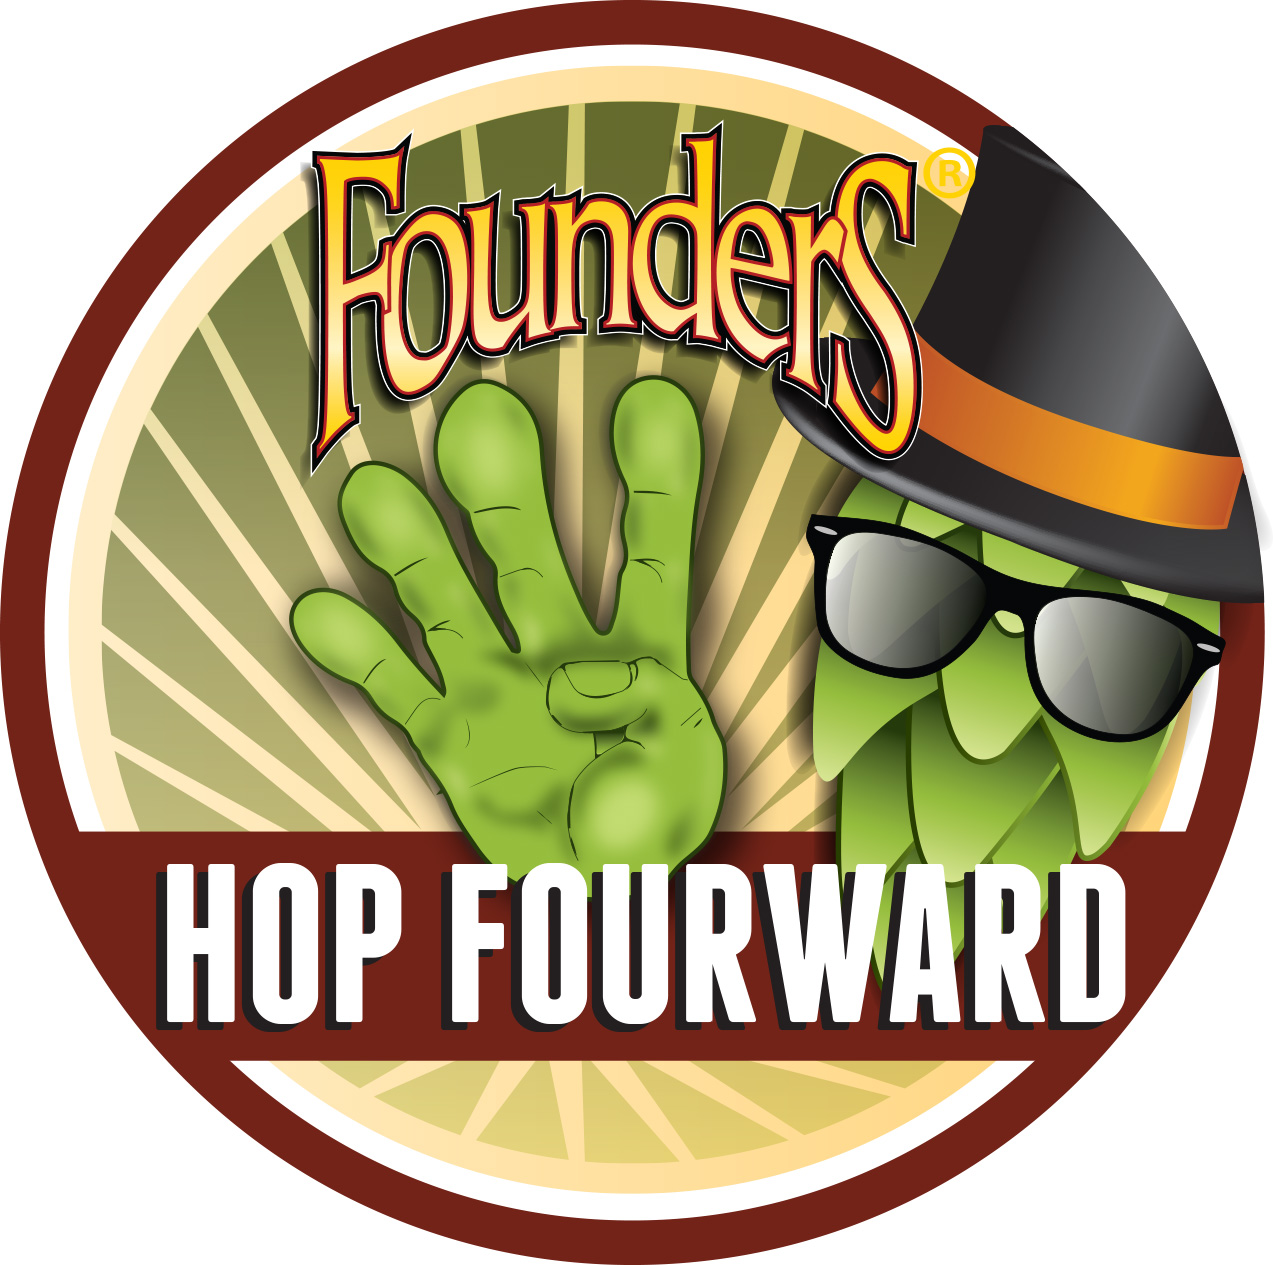 hop_fourward_badge